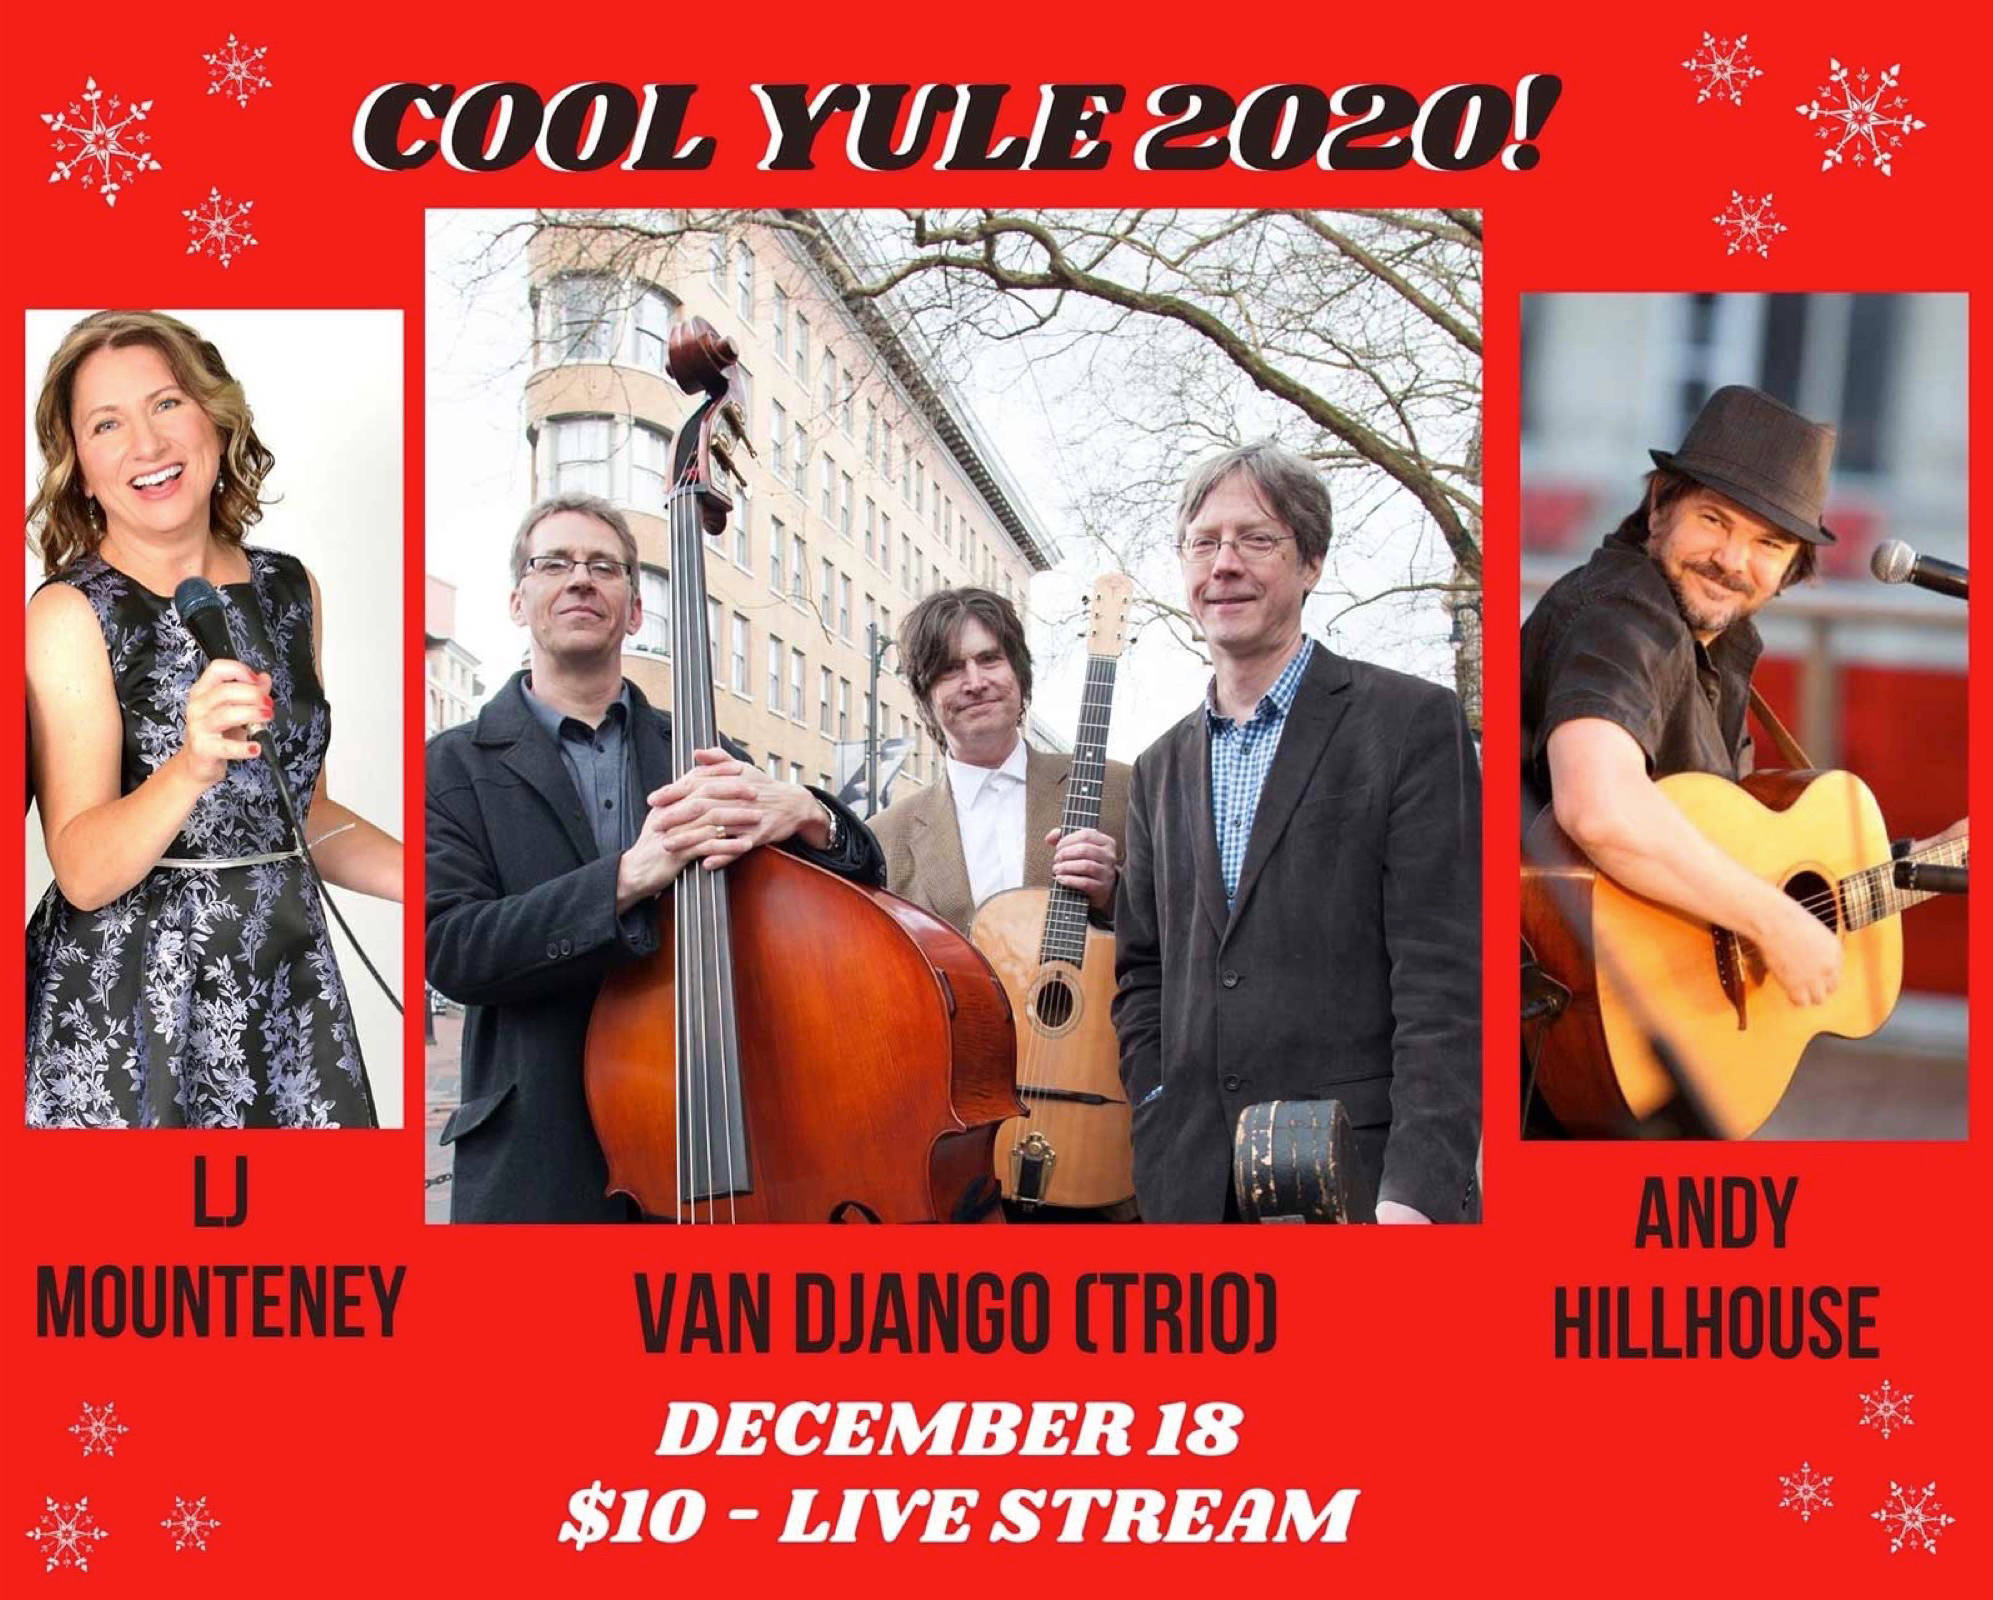 The Van Django trio with special guests LJ Mounteney and Andy Hillhouse are set to play for the virtual Cool Yule holiday variety concert via Side Door. Tickets are $10, which are available through Harrison Festival Society (Contributed Graphic/Harrison Festival Society)